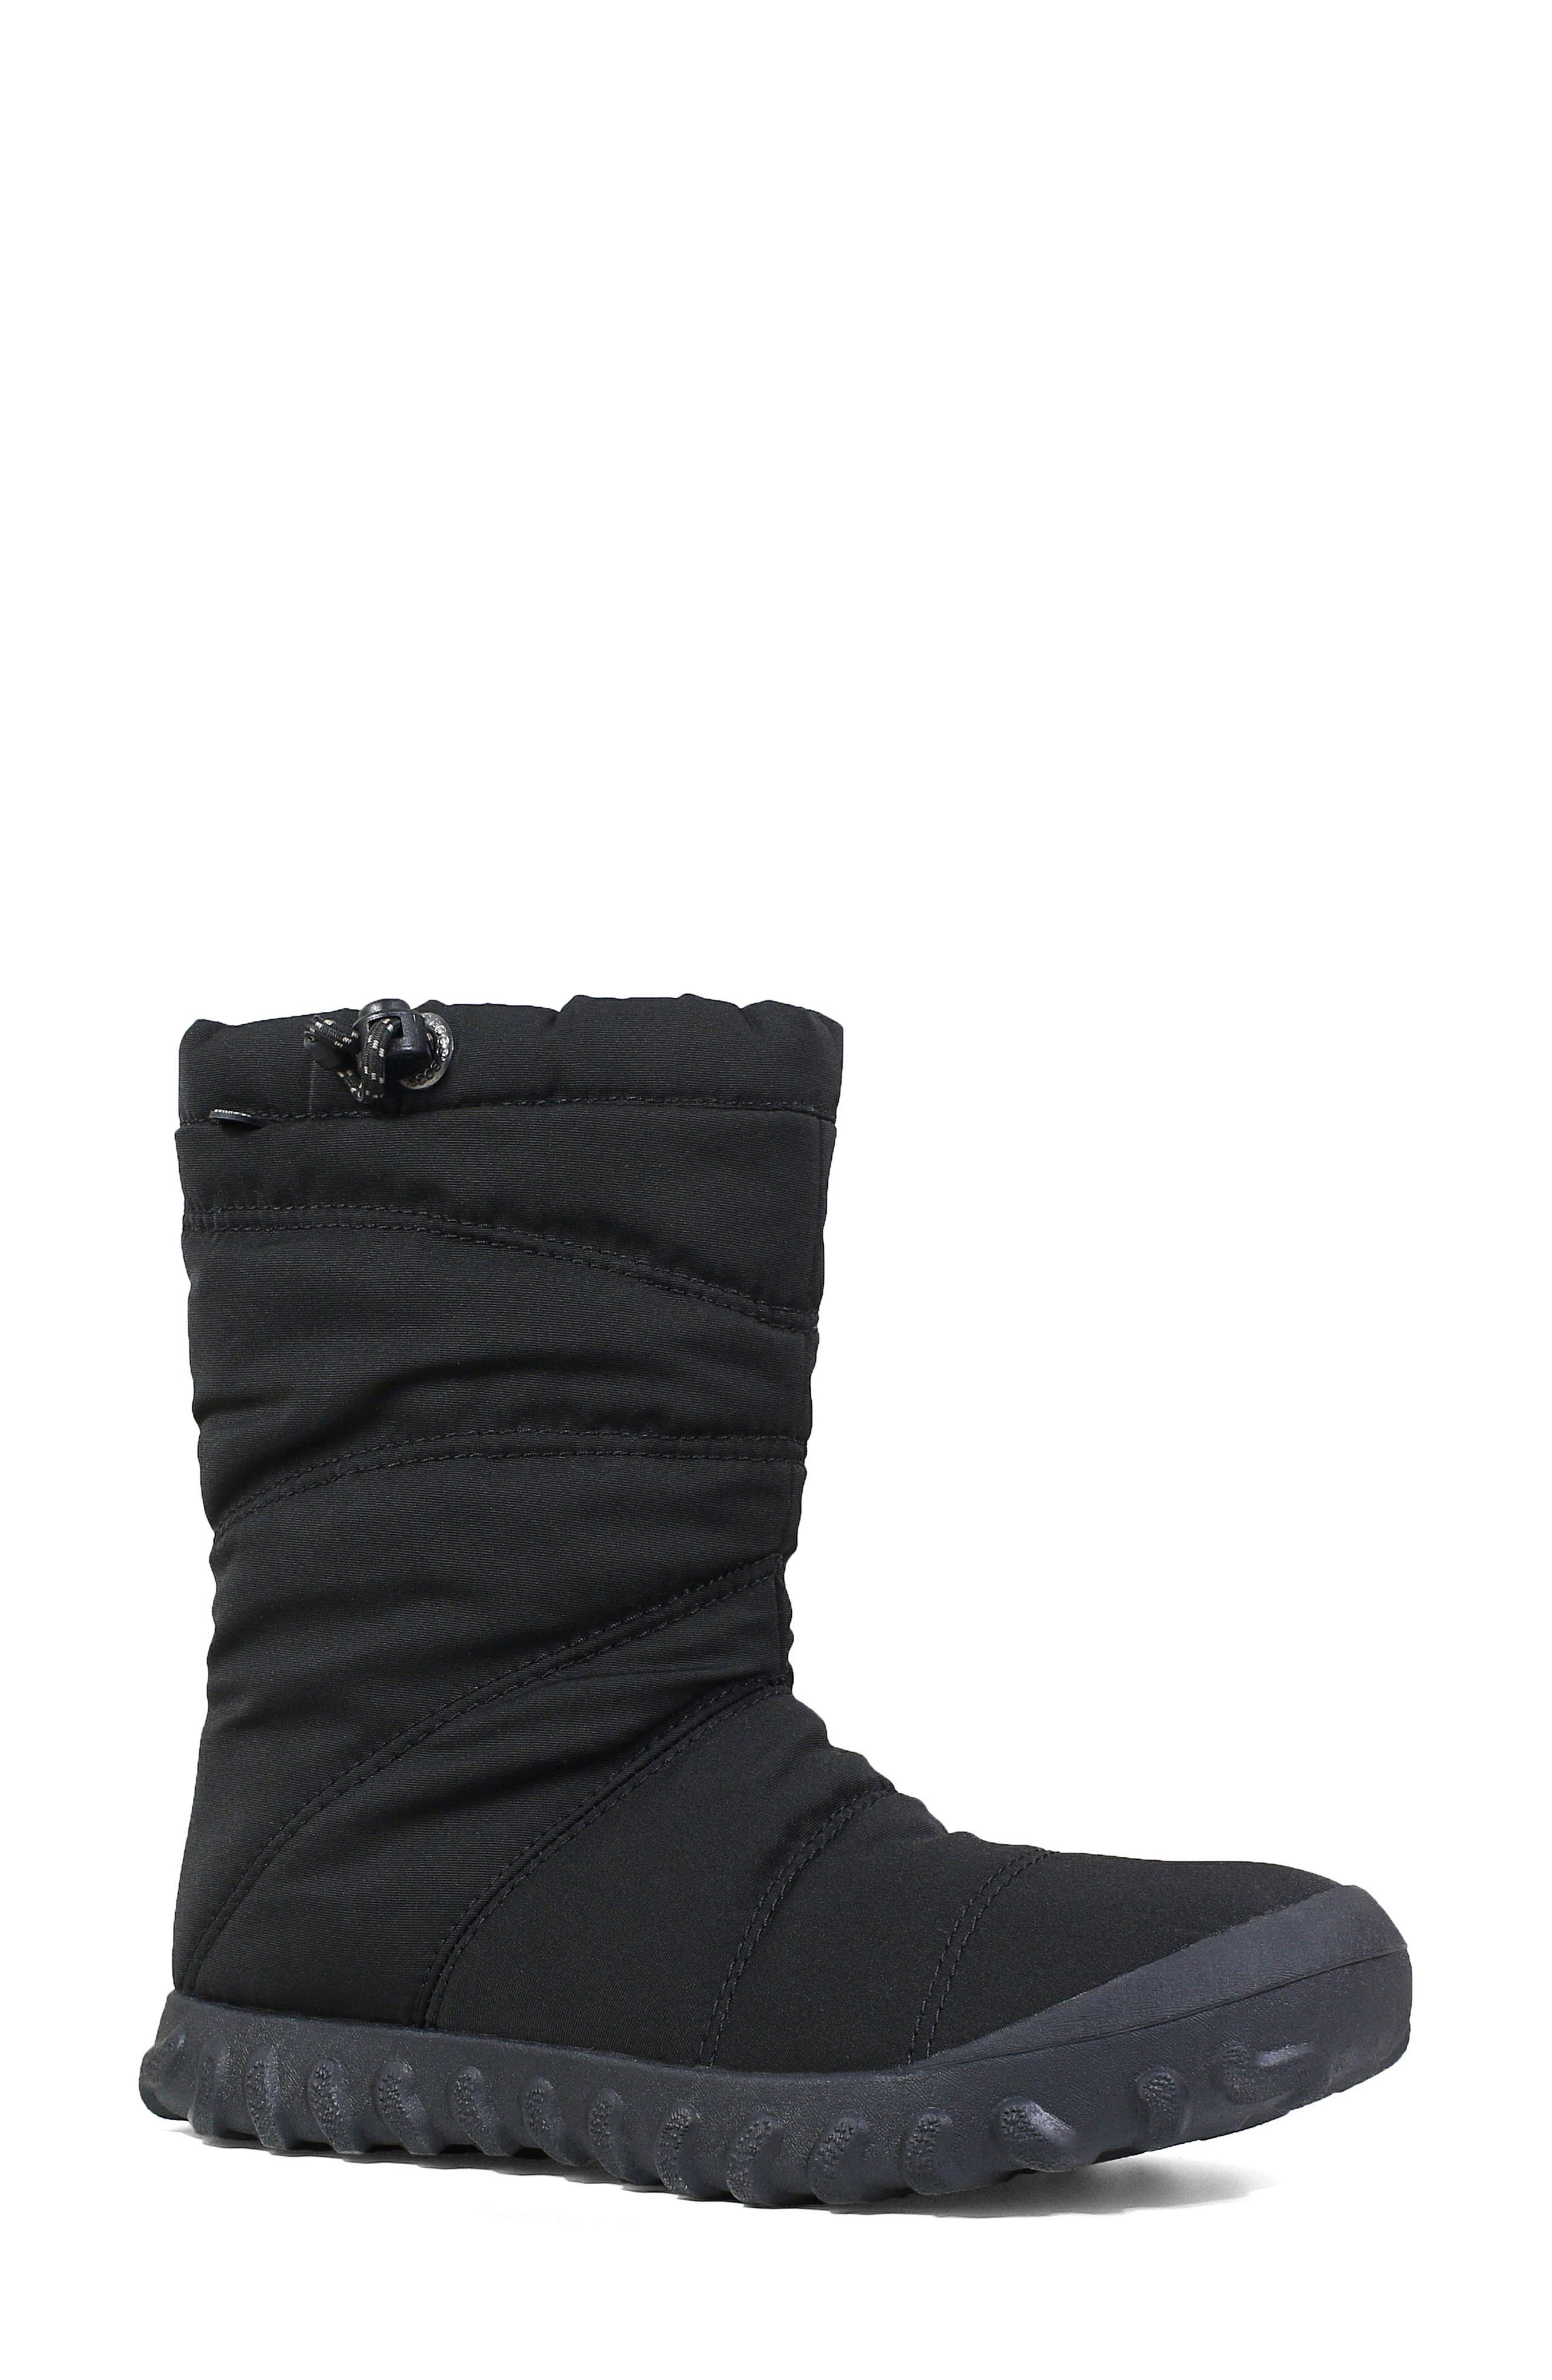 Bogs Puffy Insulated Waterproof Boot, Black